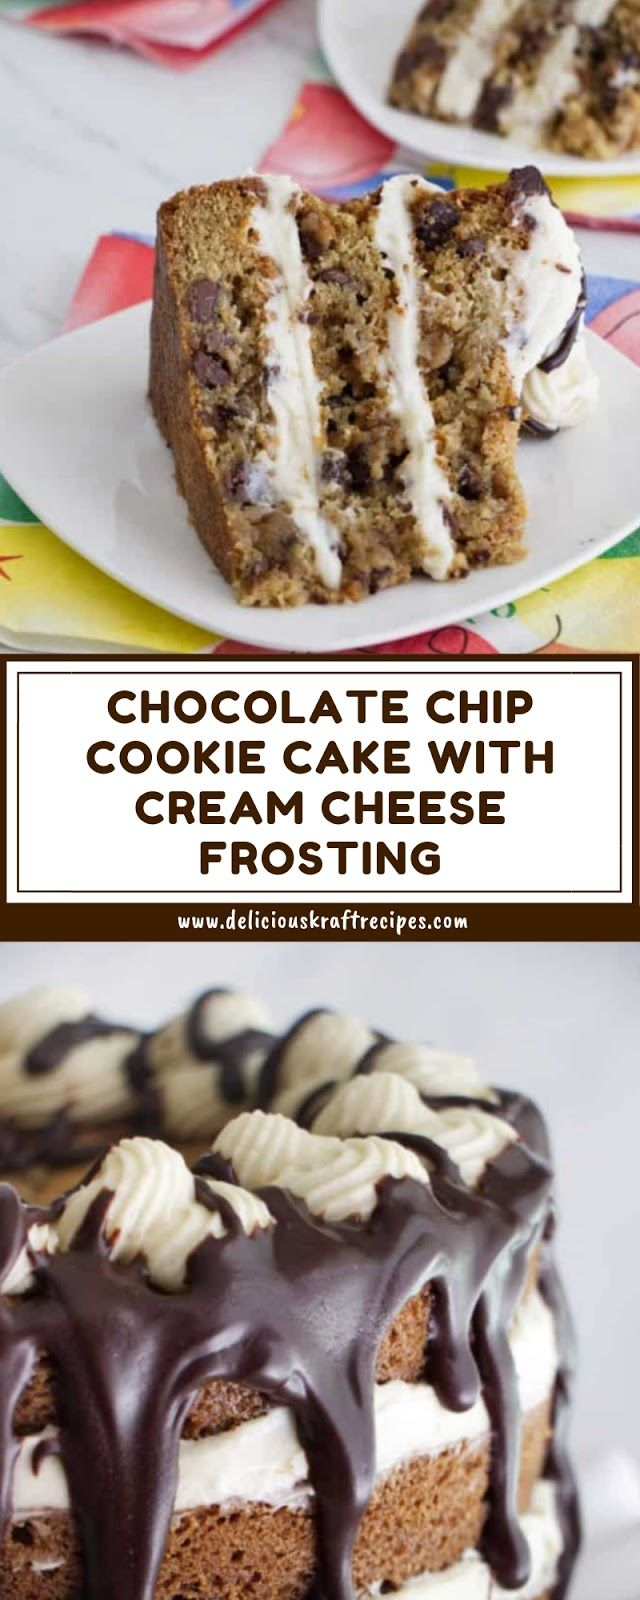 CHOCOLATE CHIP COOKIE CAKE WITH CREAM CHEESE FROSTING #creamcheesefrosting